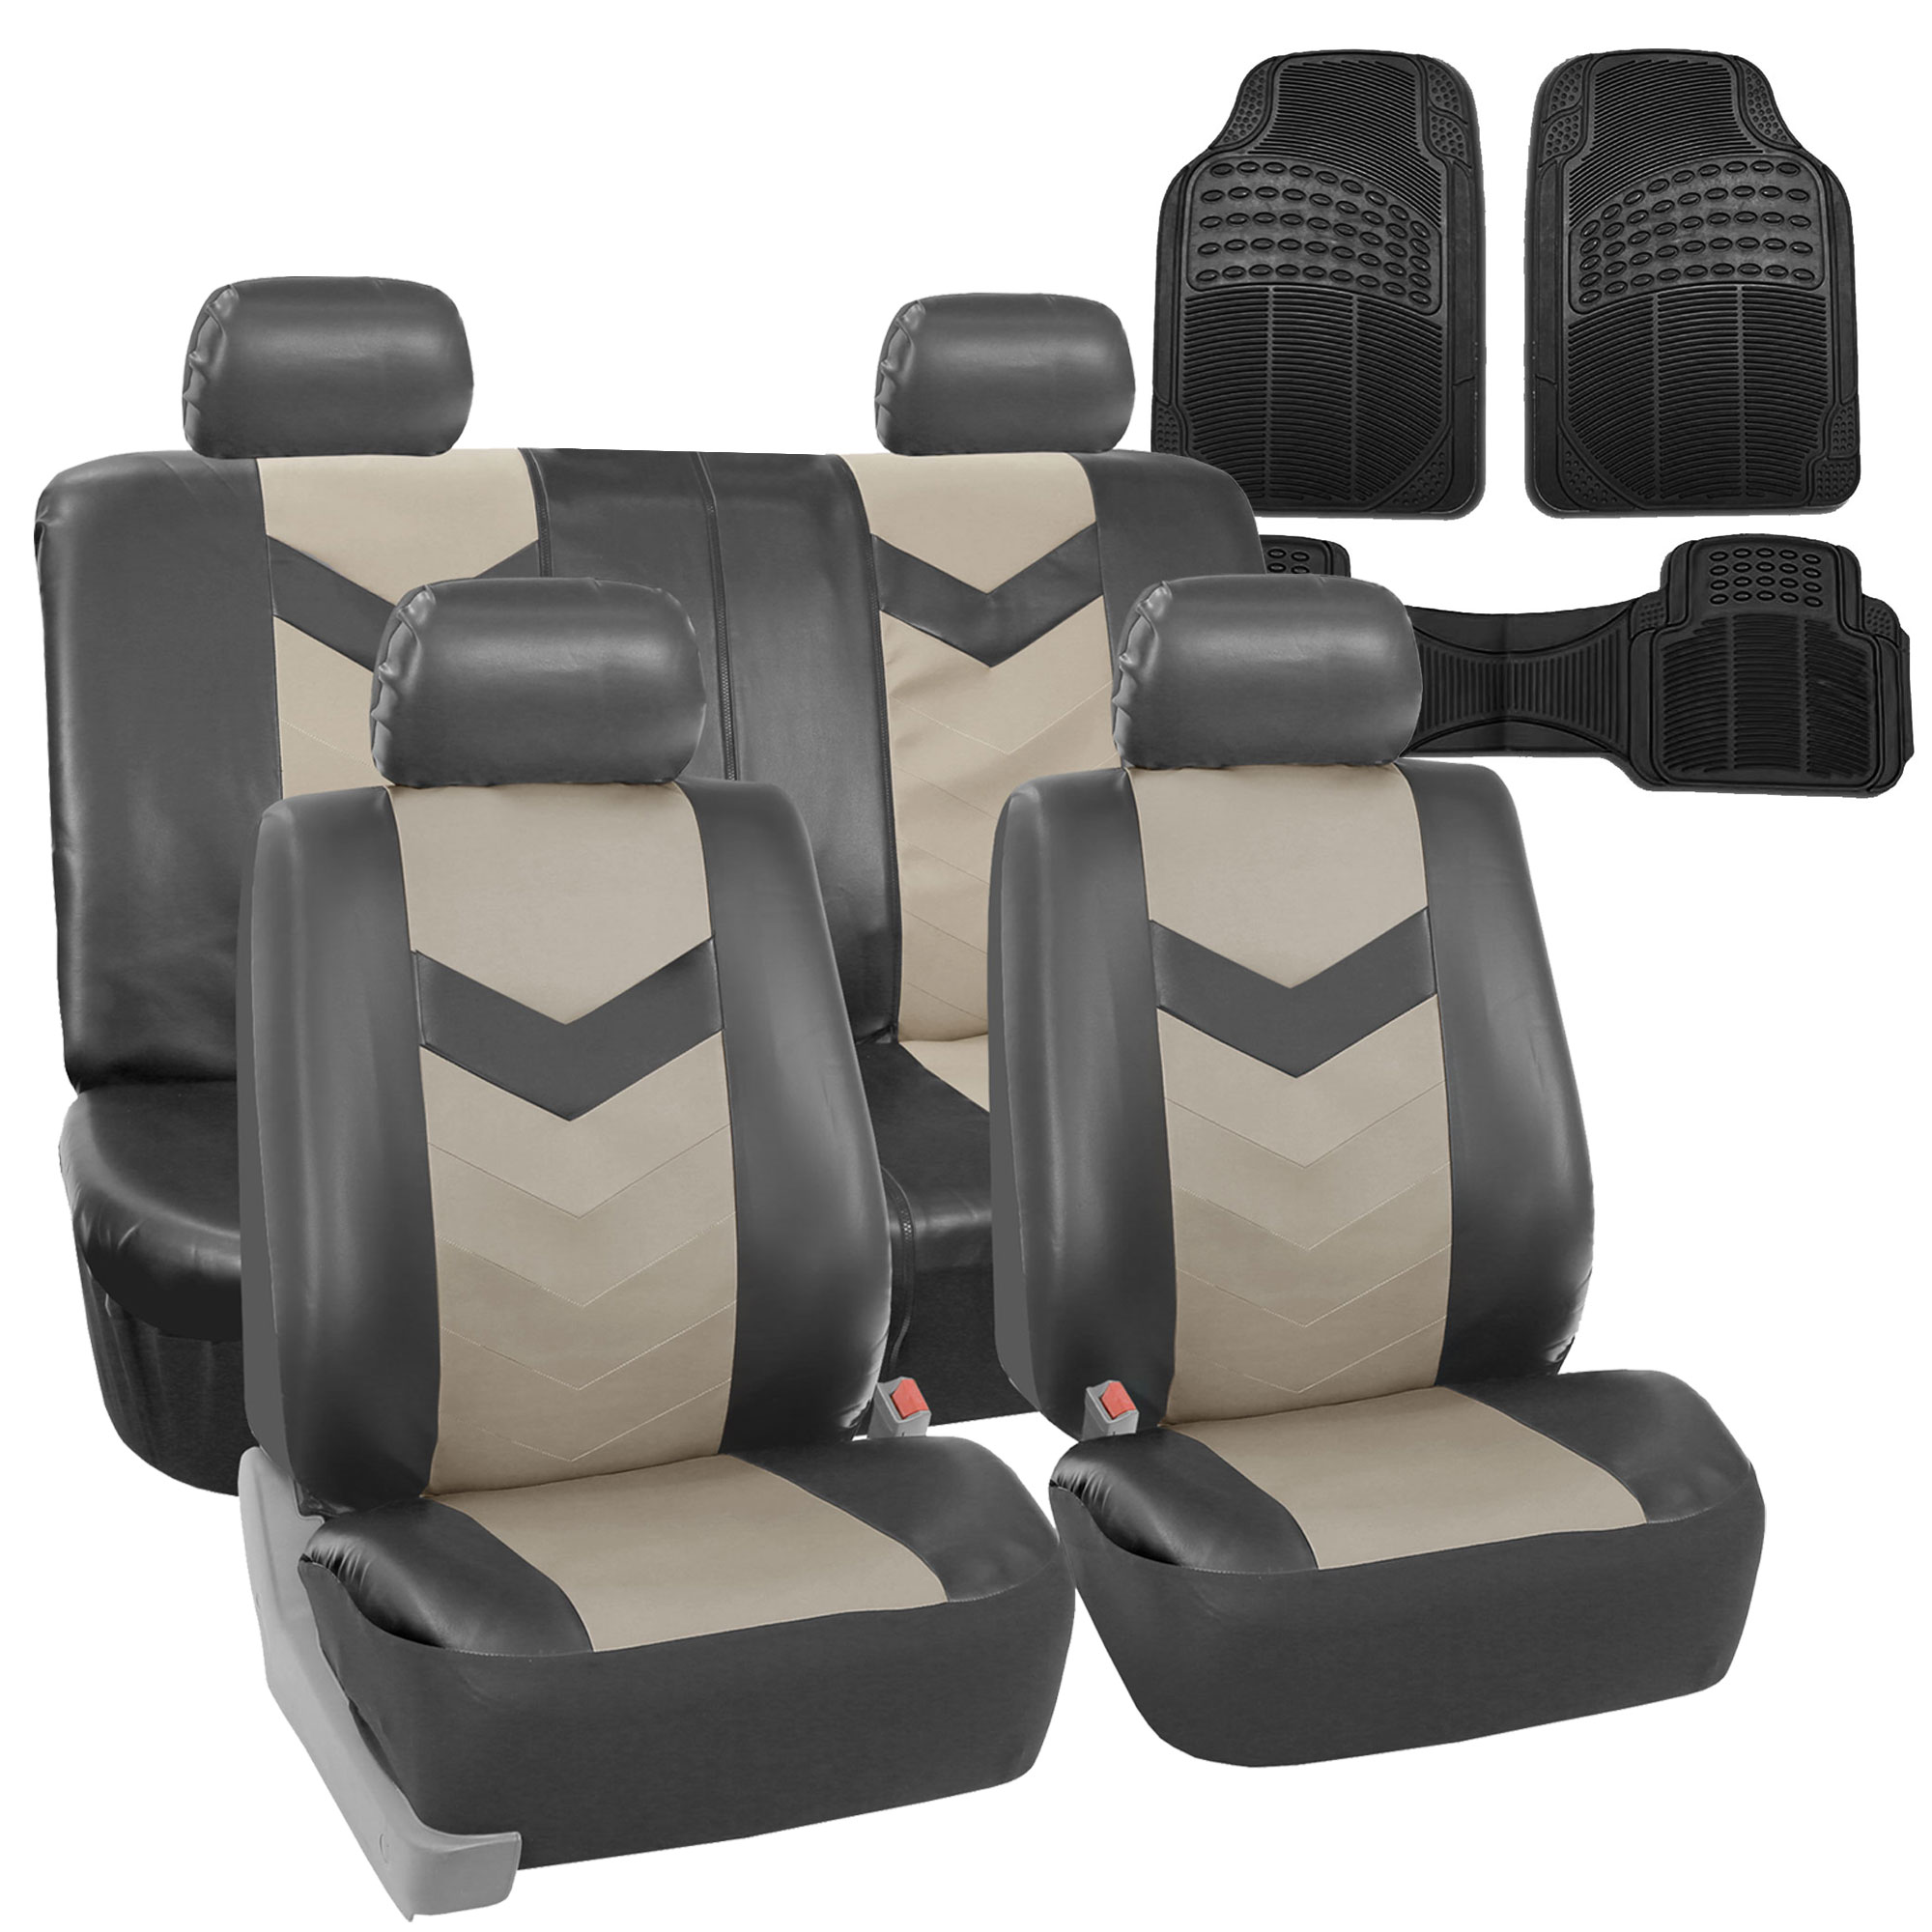 Faux Leather Car Seat Covers For Car Gray W/ Heavy Duty